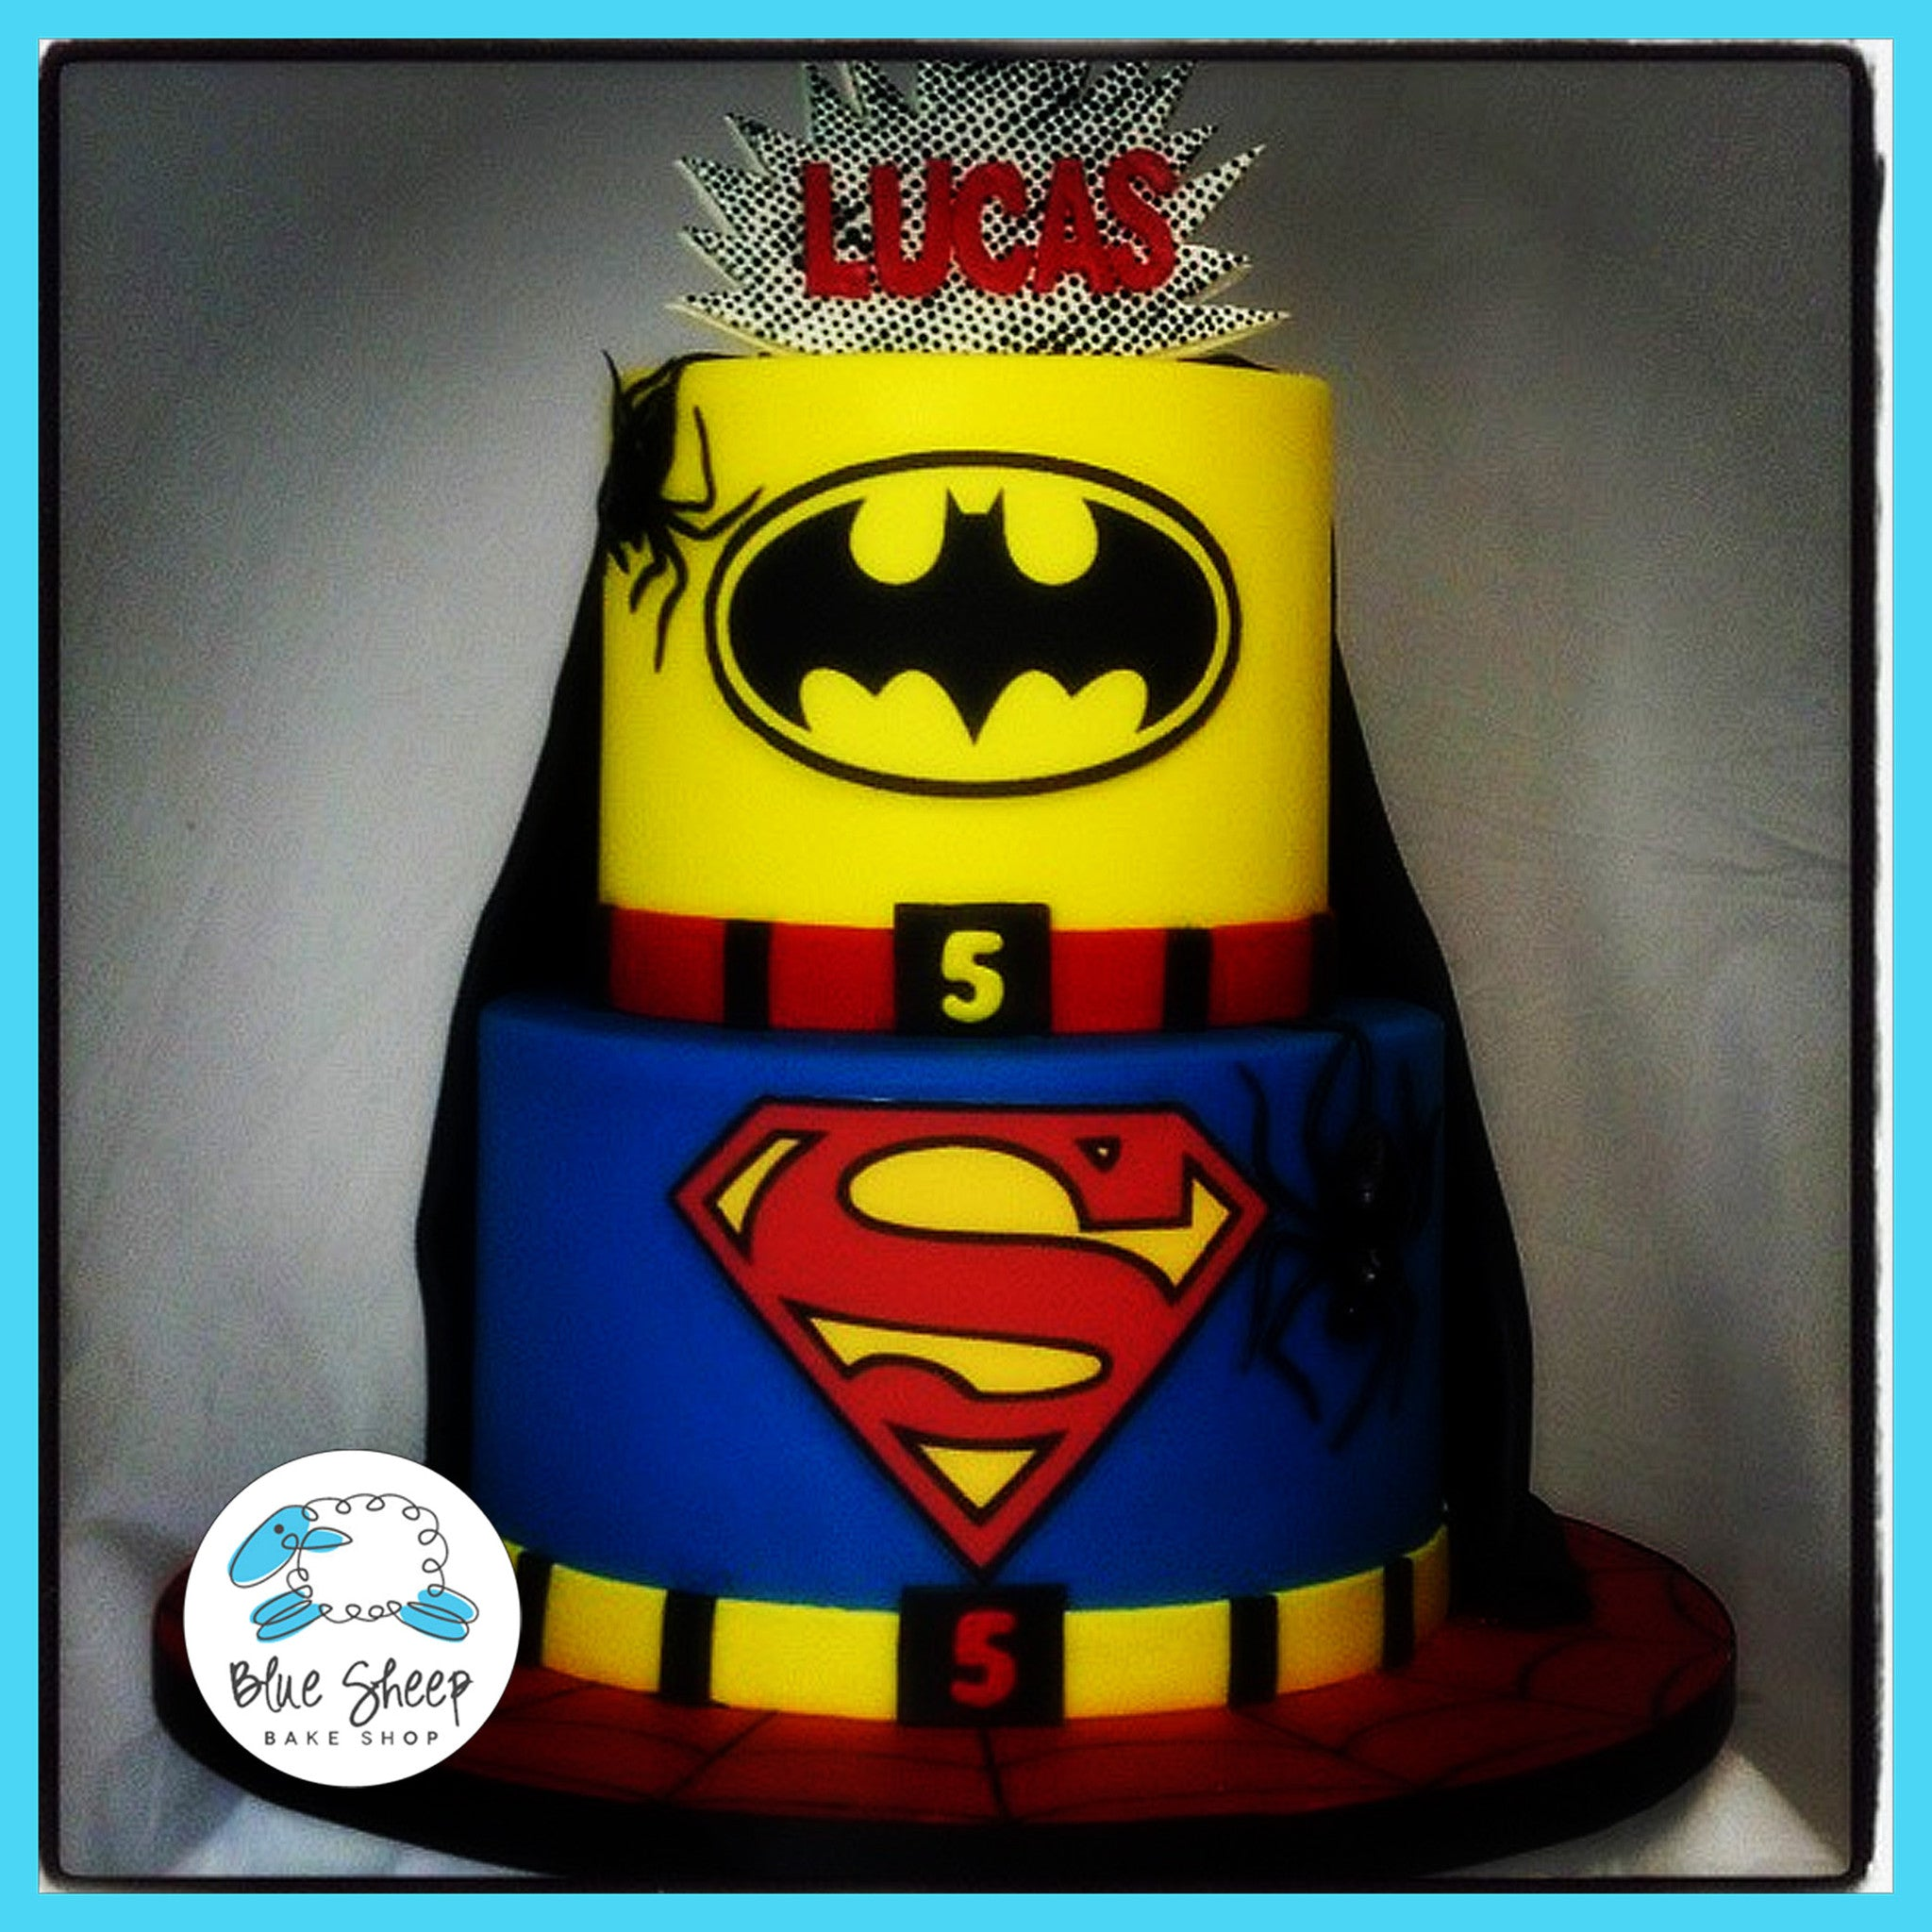 Amazing Superhero Birthday Cake With Batman Superman Blue Sheep Bake Shop Funny Birthday Cards Online Bapapcheapnameinfo